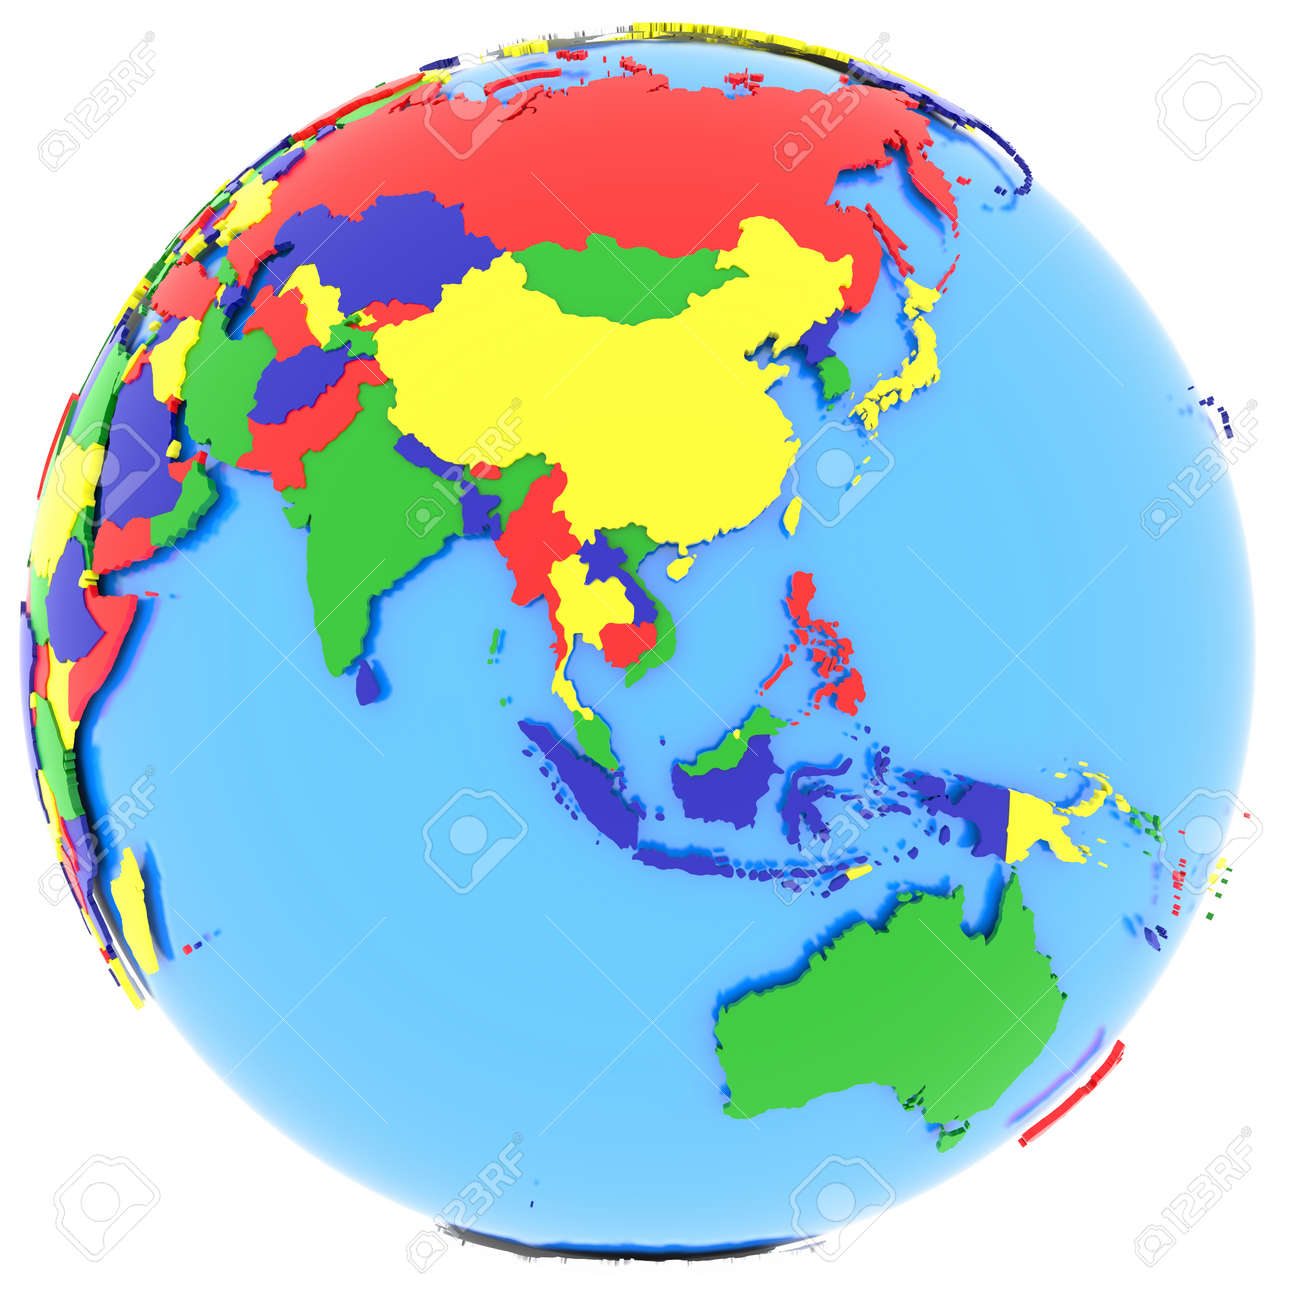 Political Map Of Southeast Asia With Countries In Four Colours – South and East Asia Political Map